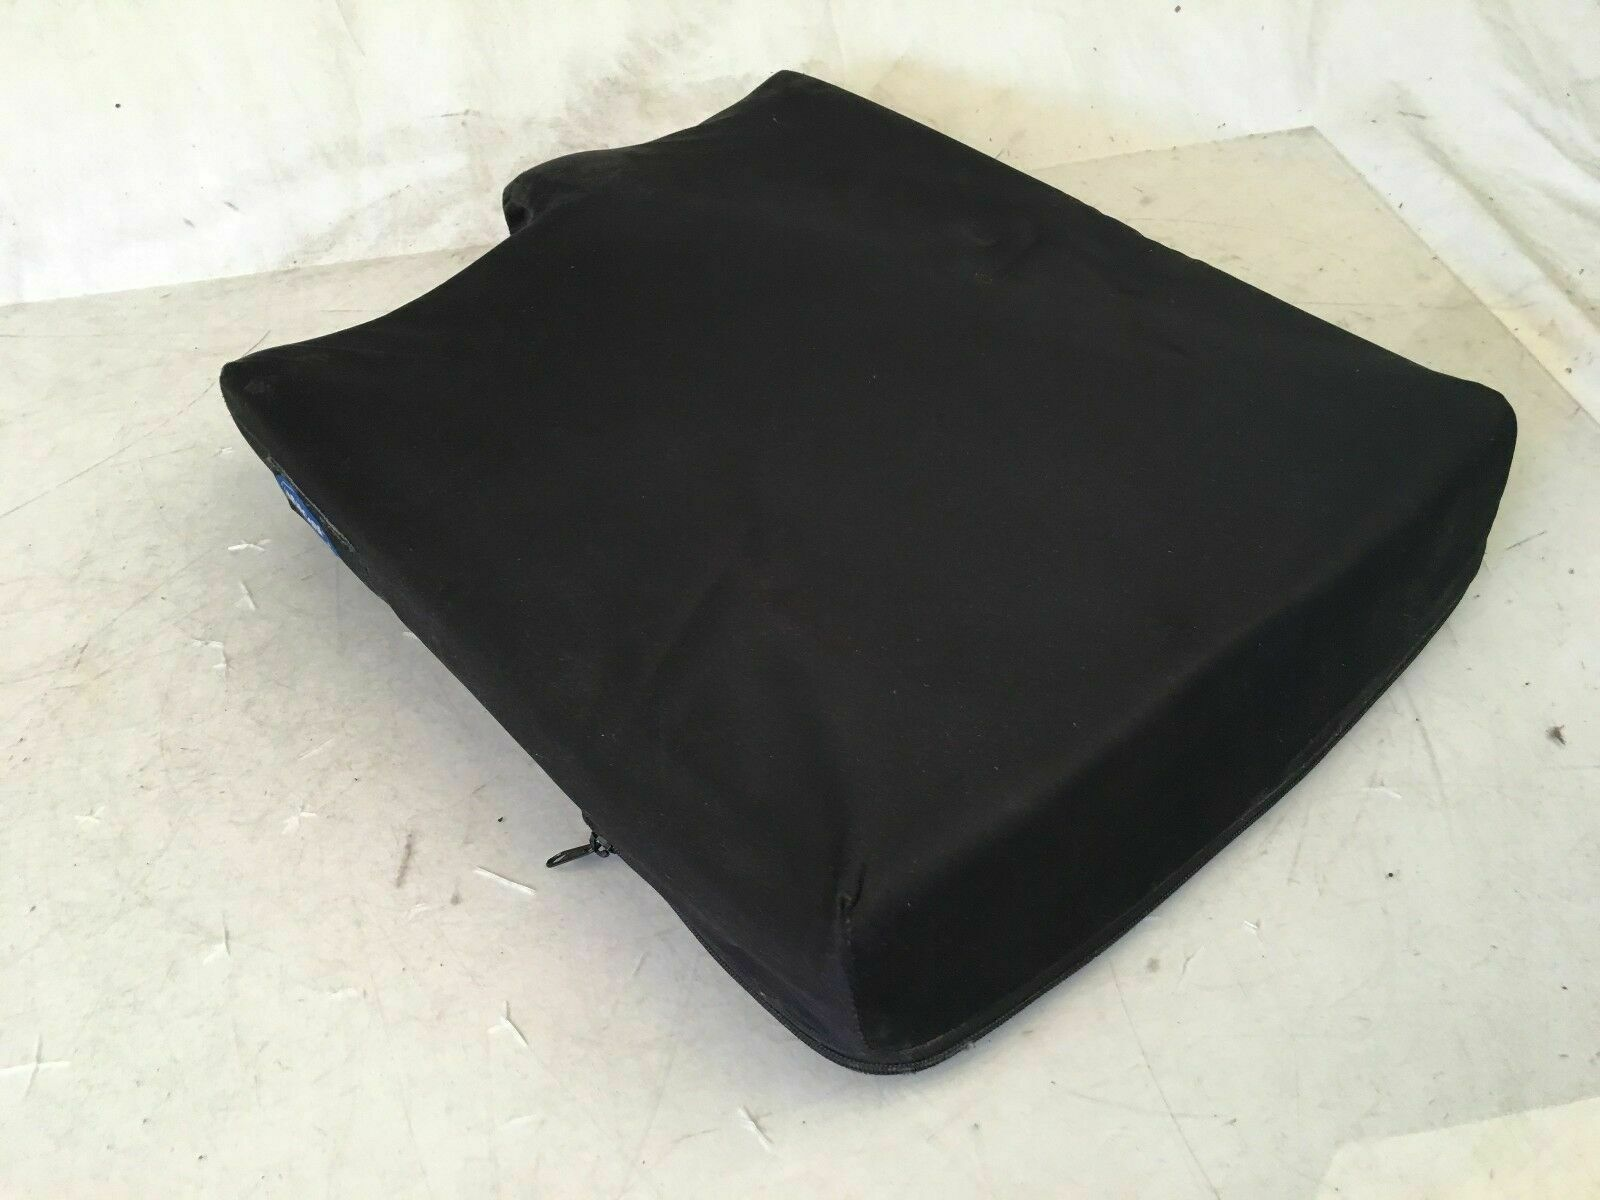 Invacare TDX SP - Seat Cushion - 20x15x4 IGC - For Power Wheelchairs image 2